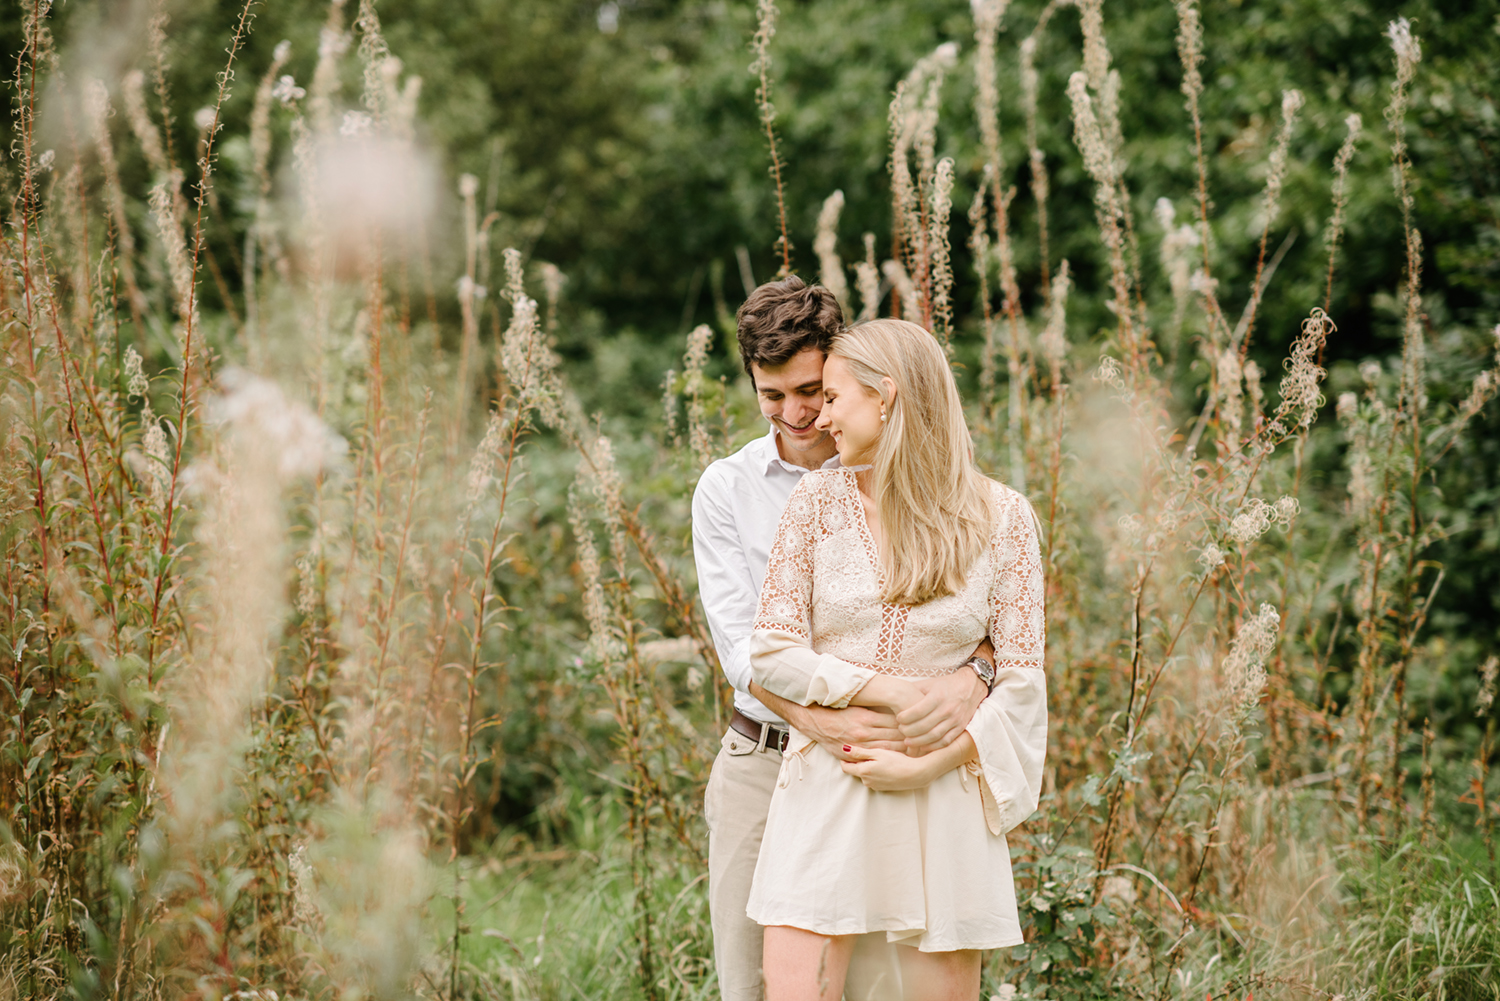 Hampstead-Heath-Engagement-Shoot-001.jpg